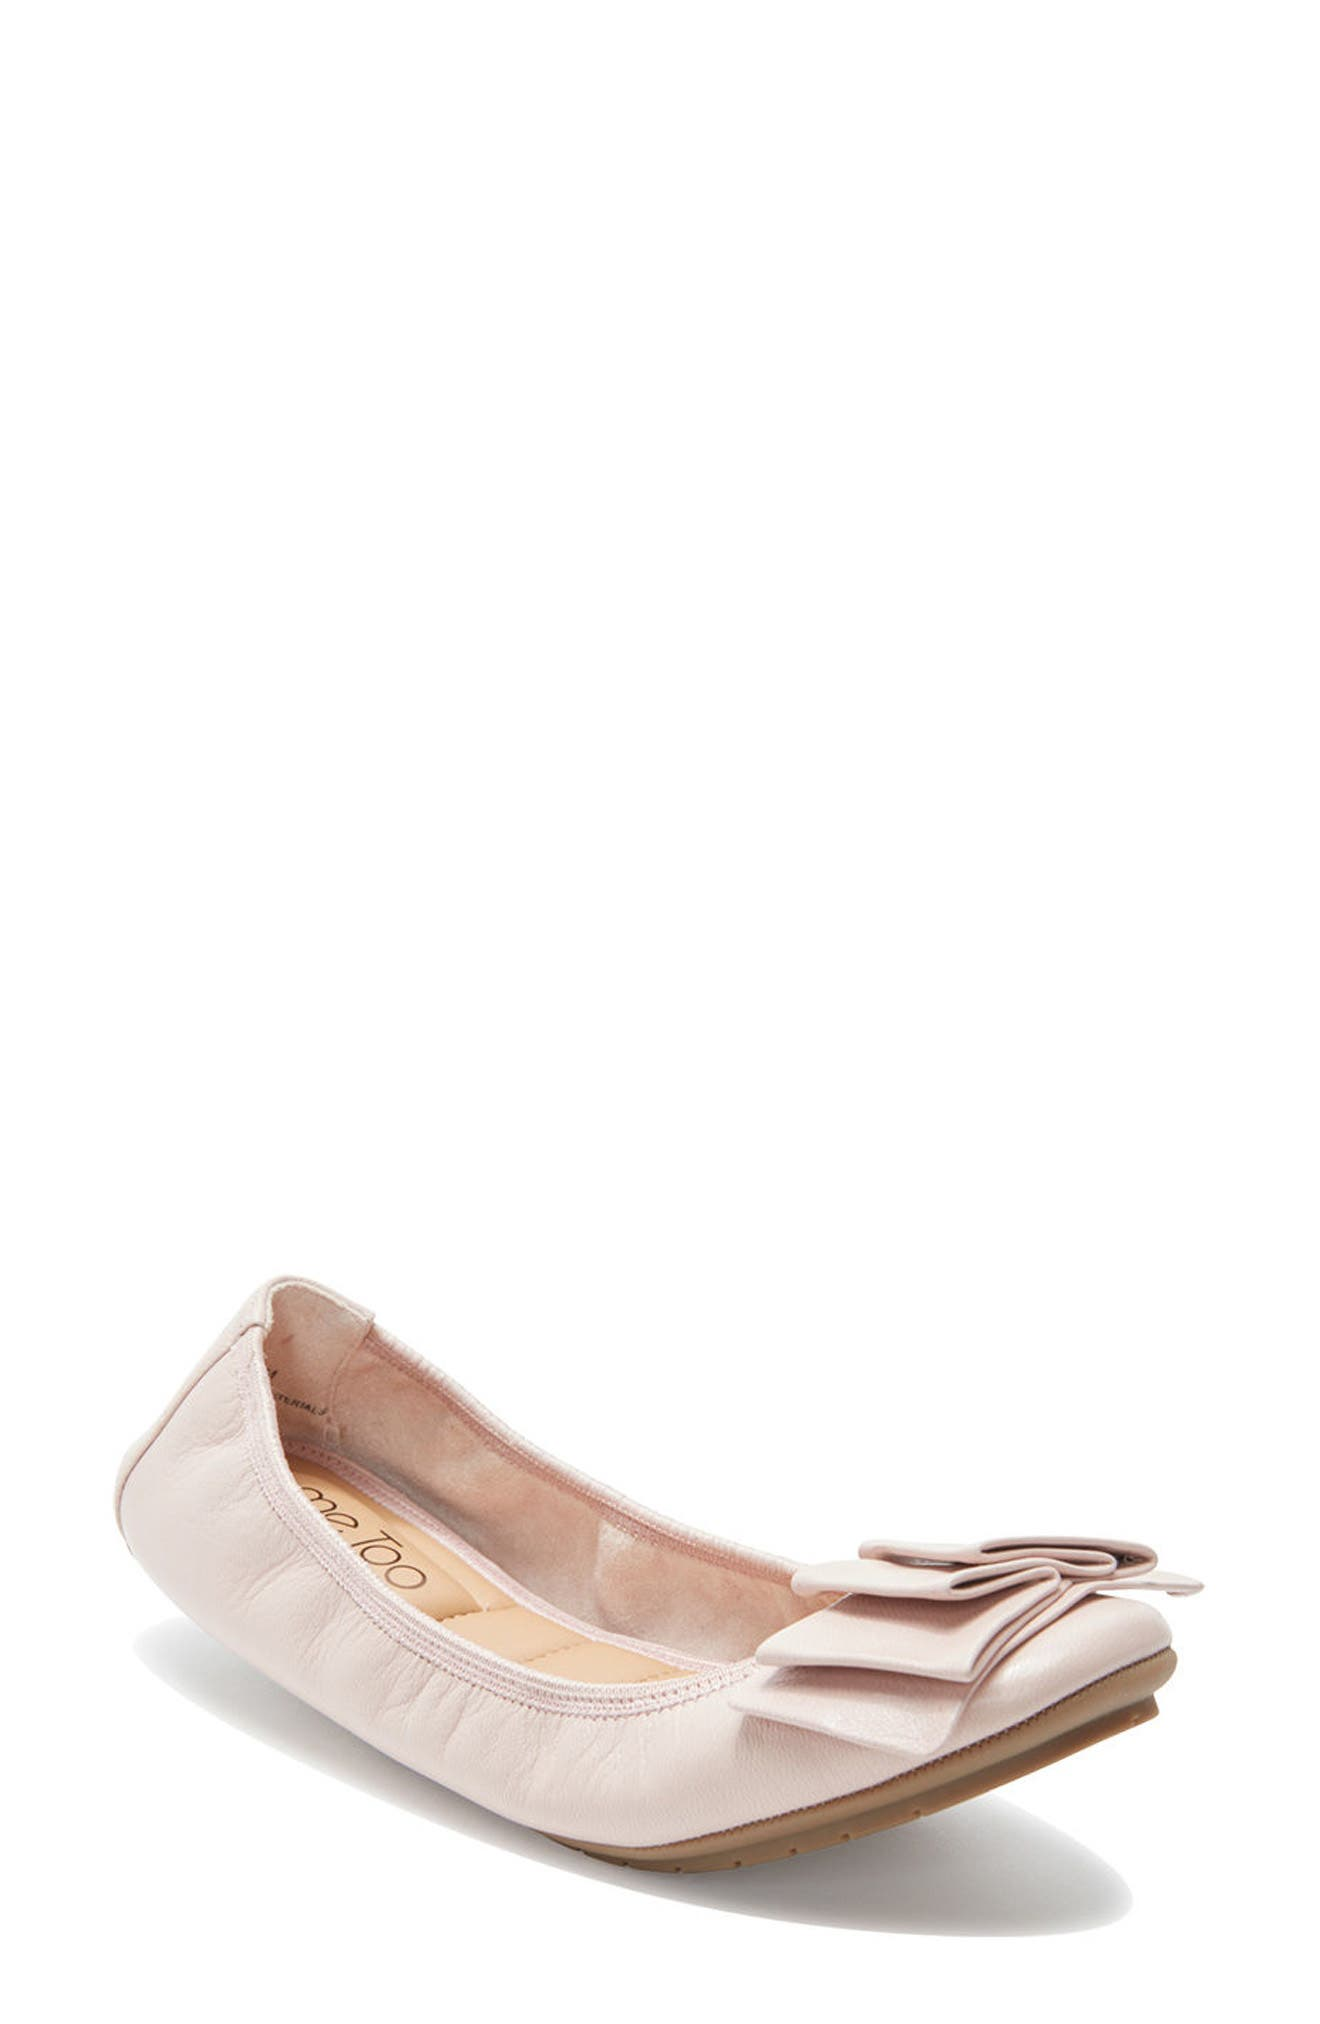 'Lilyana 2.0' Flat,                         Main,                         color, Pink Leather